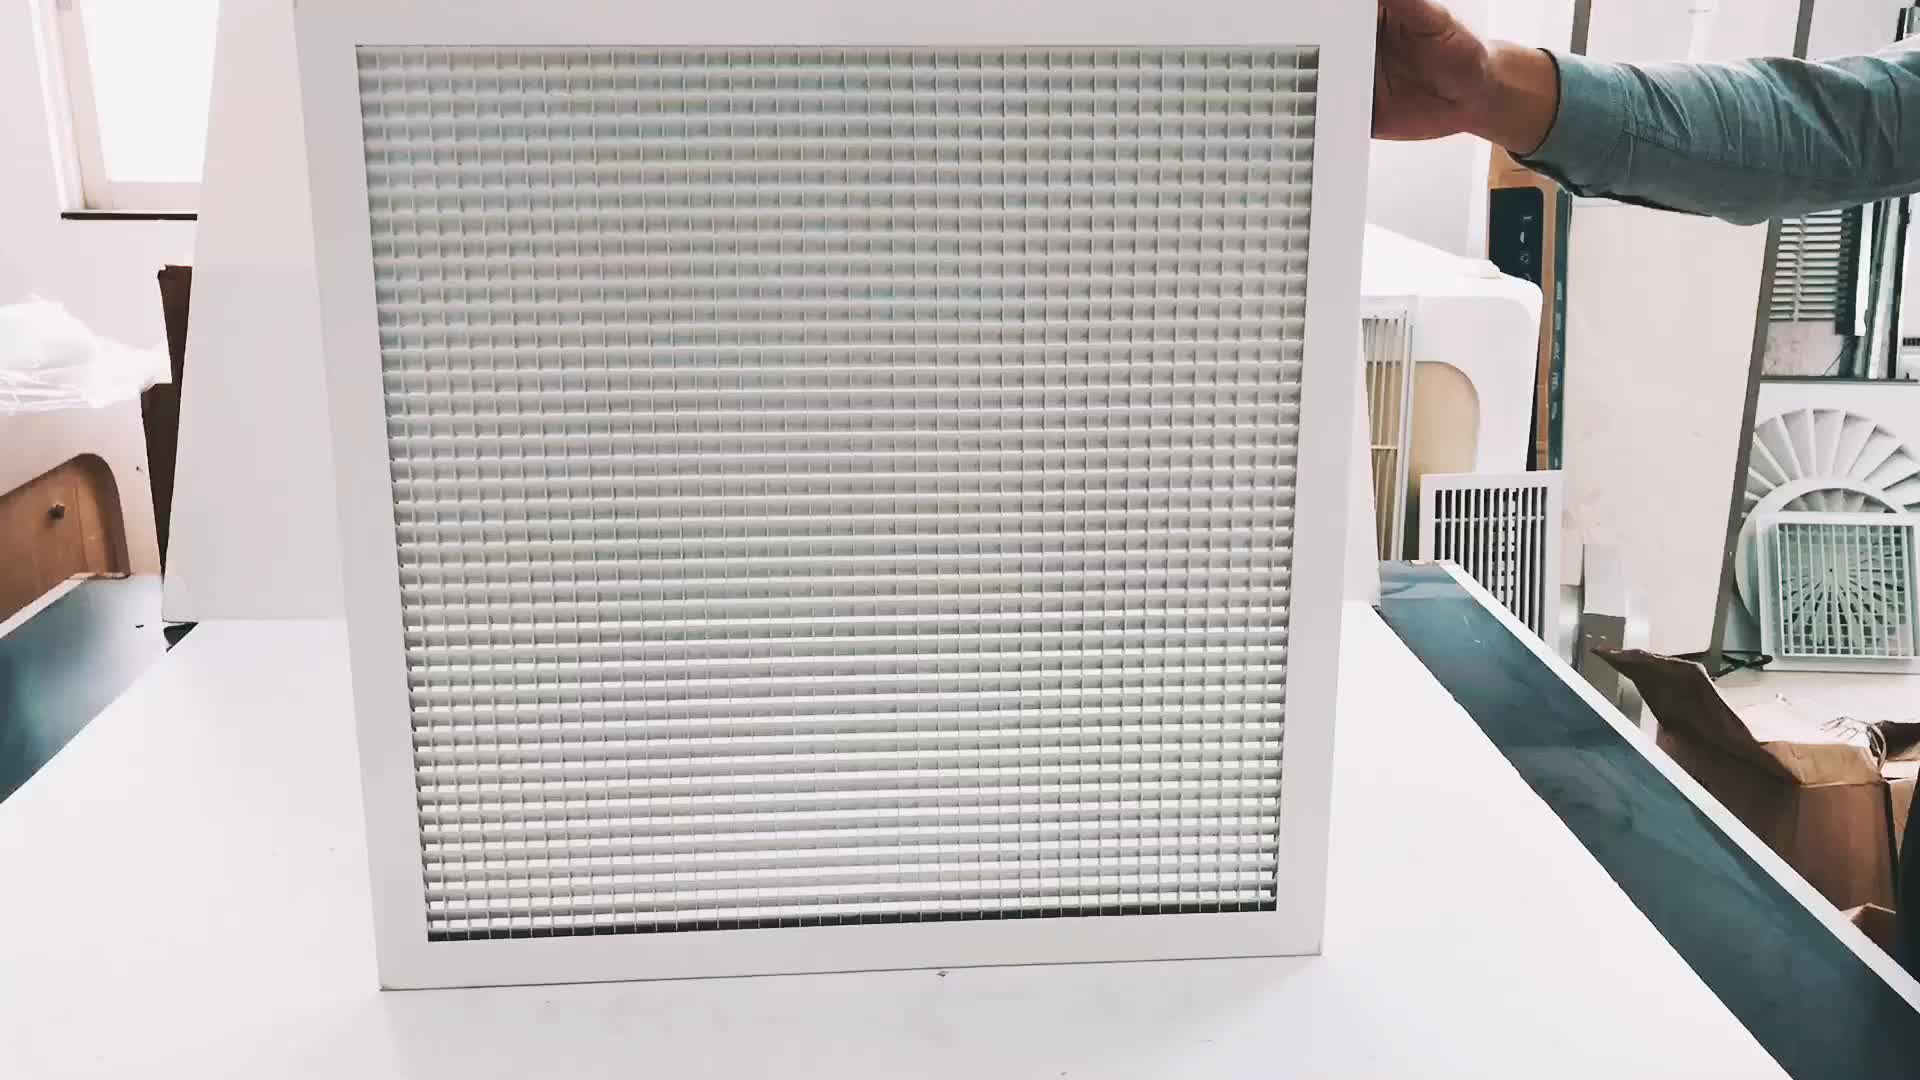 Used Restaurant Booths For Sale >> Eggcrate Air Conditioner Linear Return Grille - Buy ...